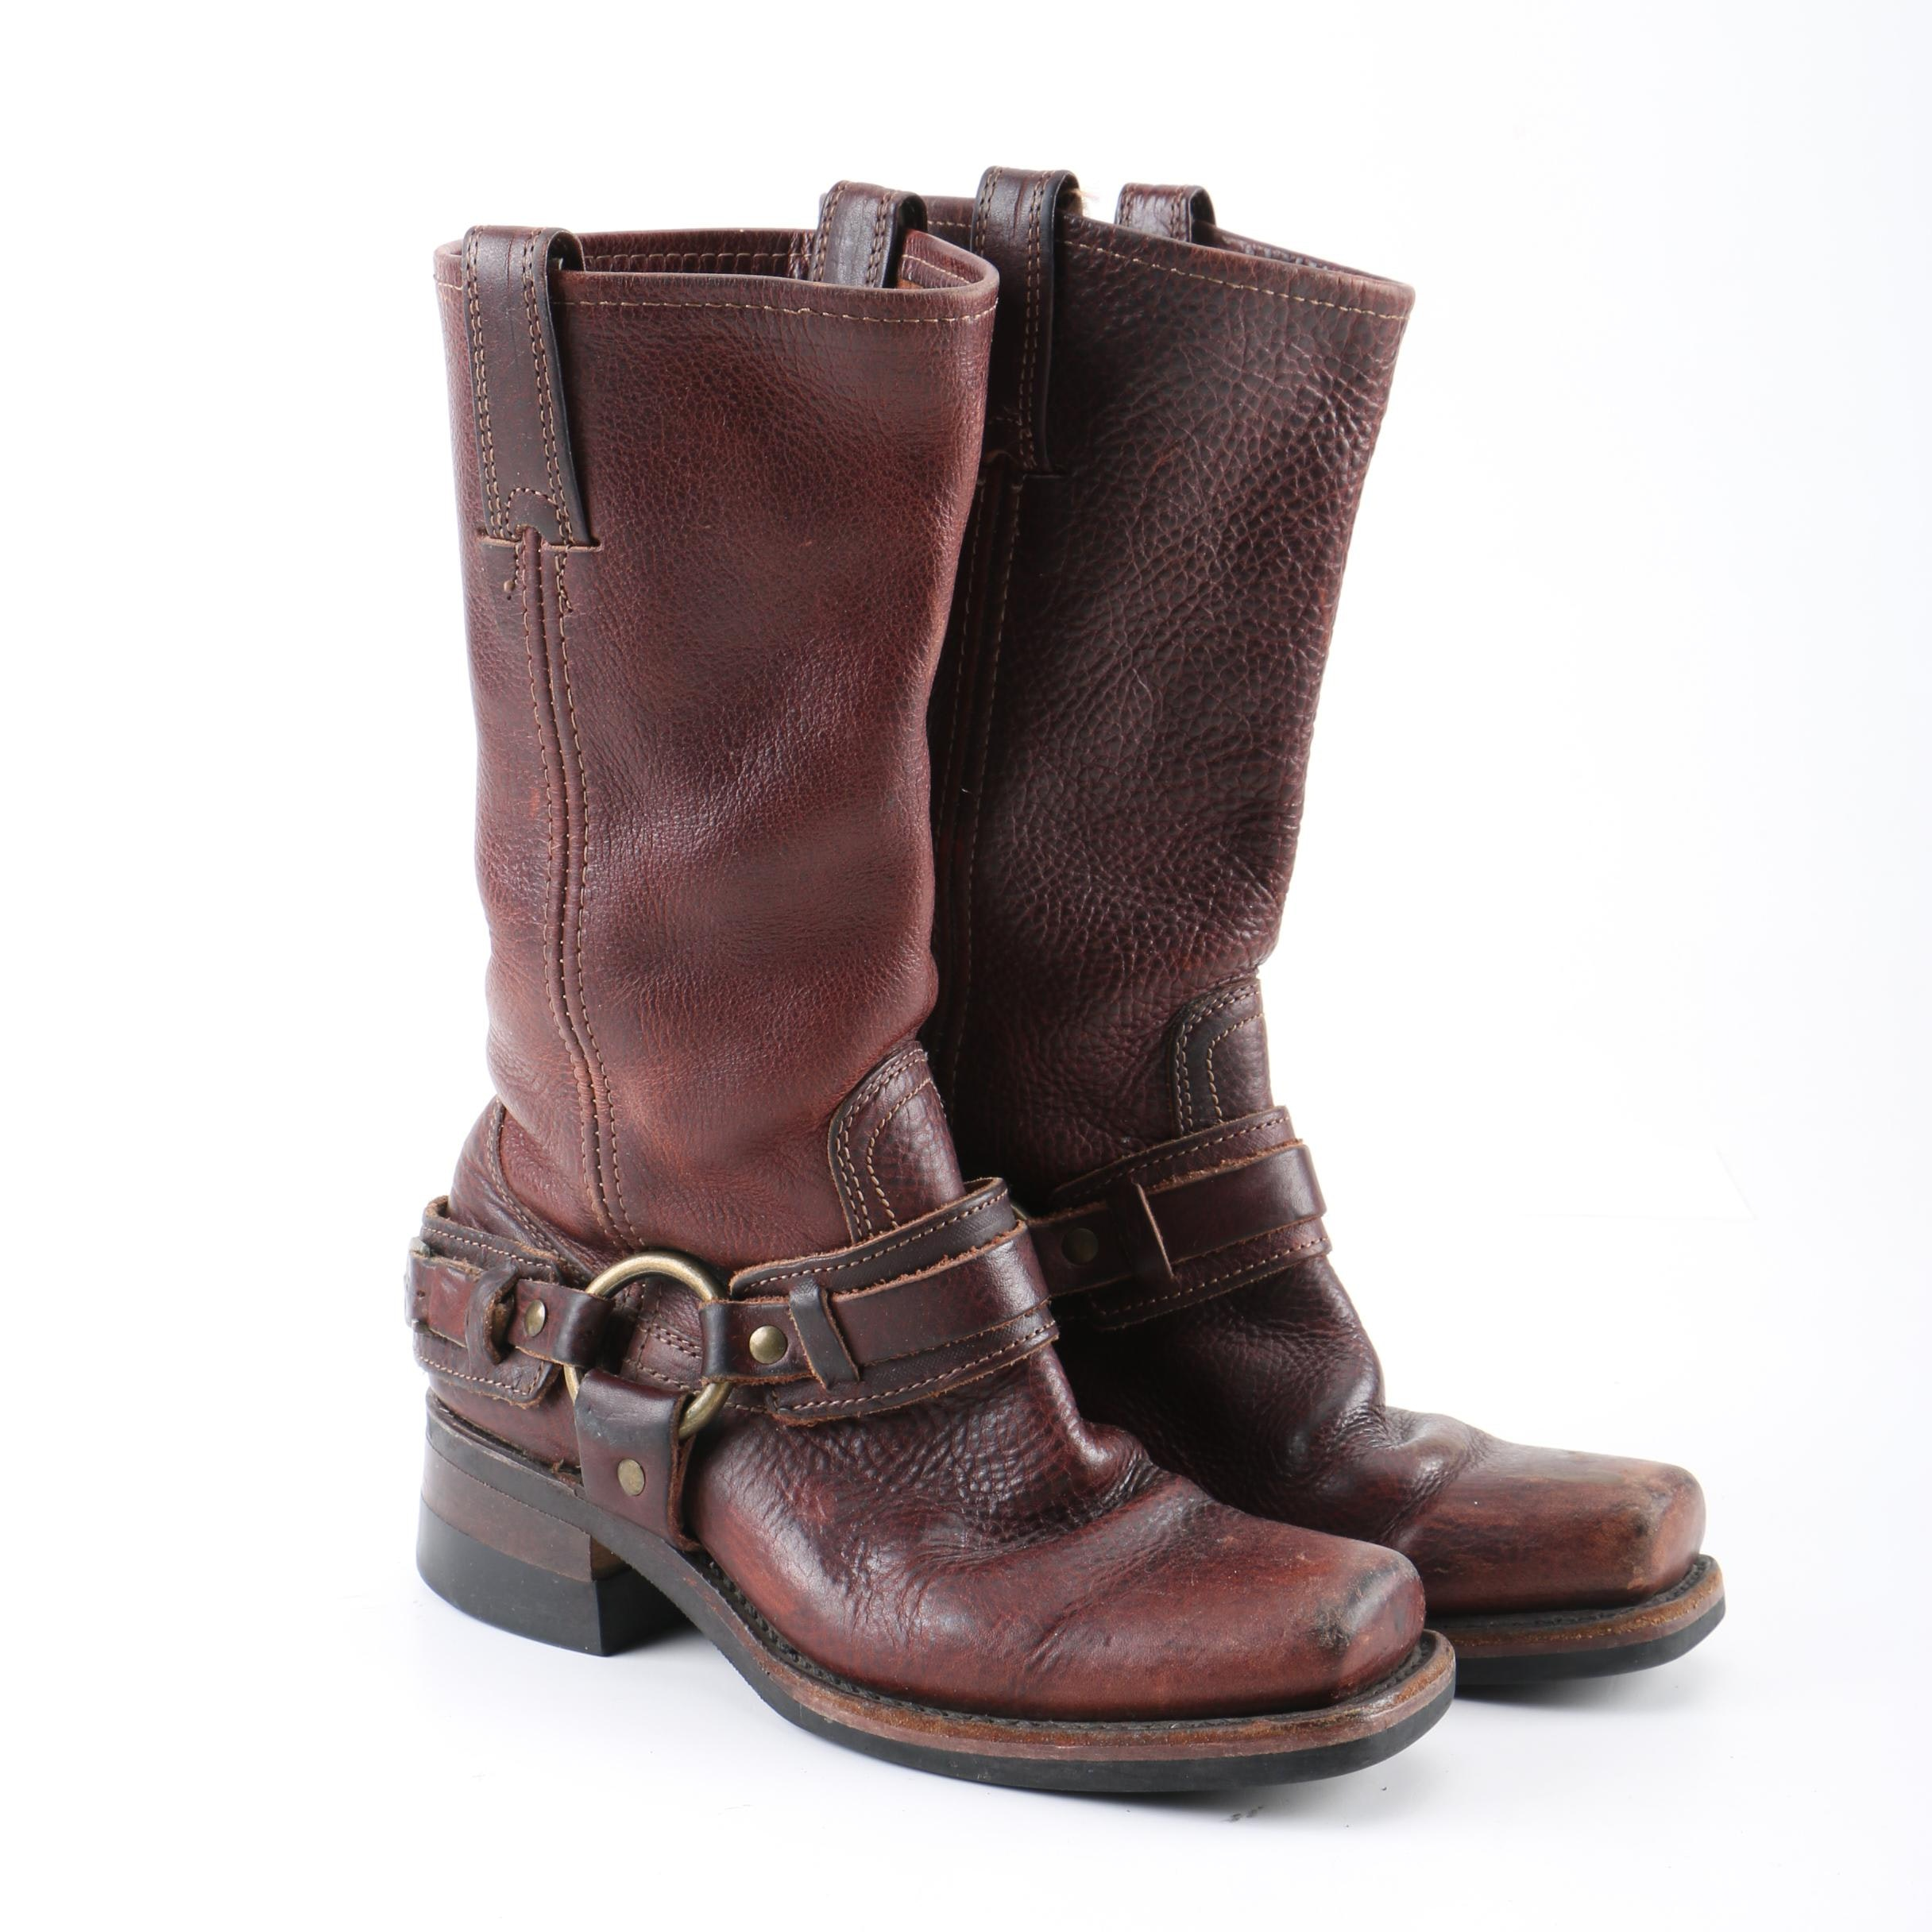 Women's Frye Dark Brown Leather Harness Boots